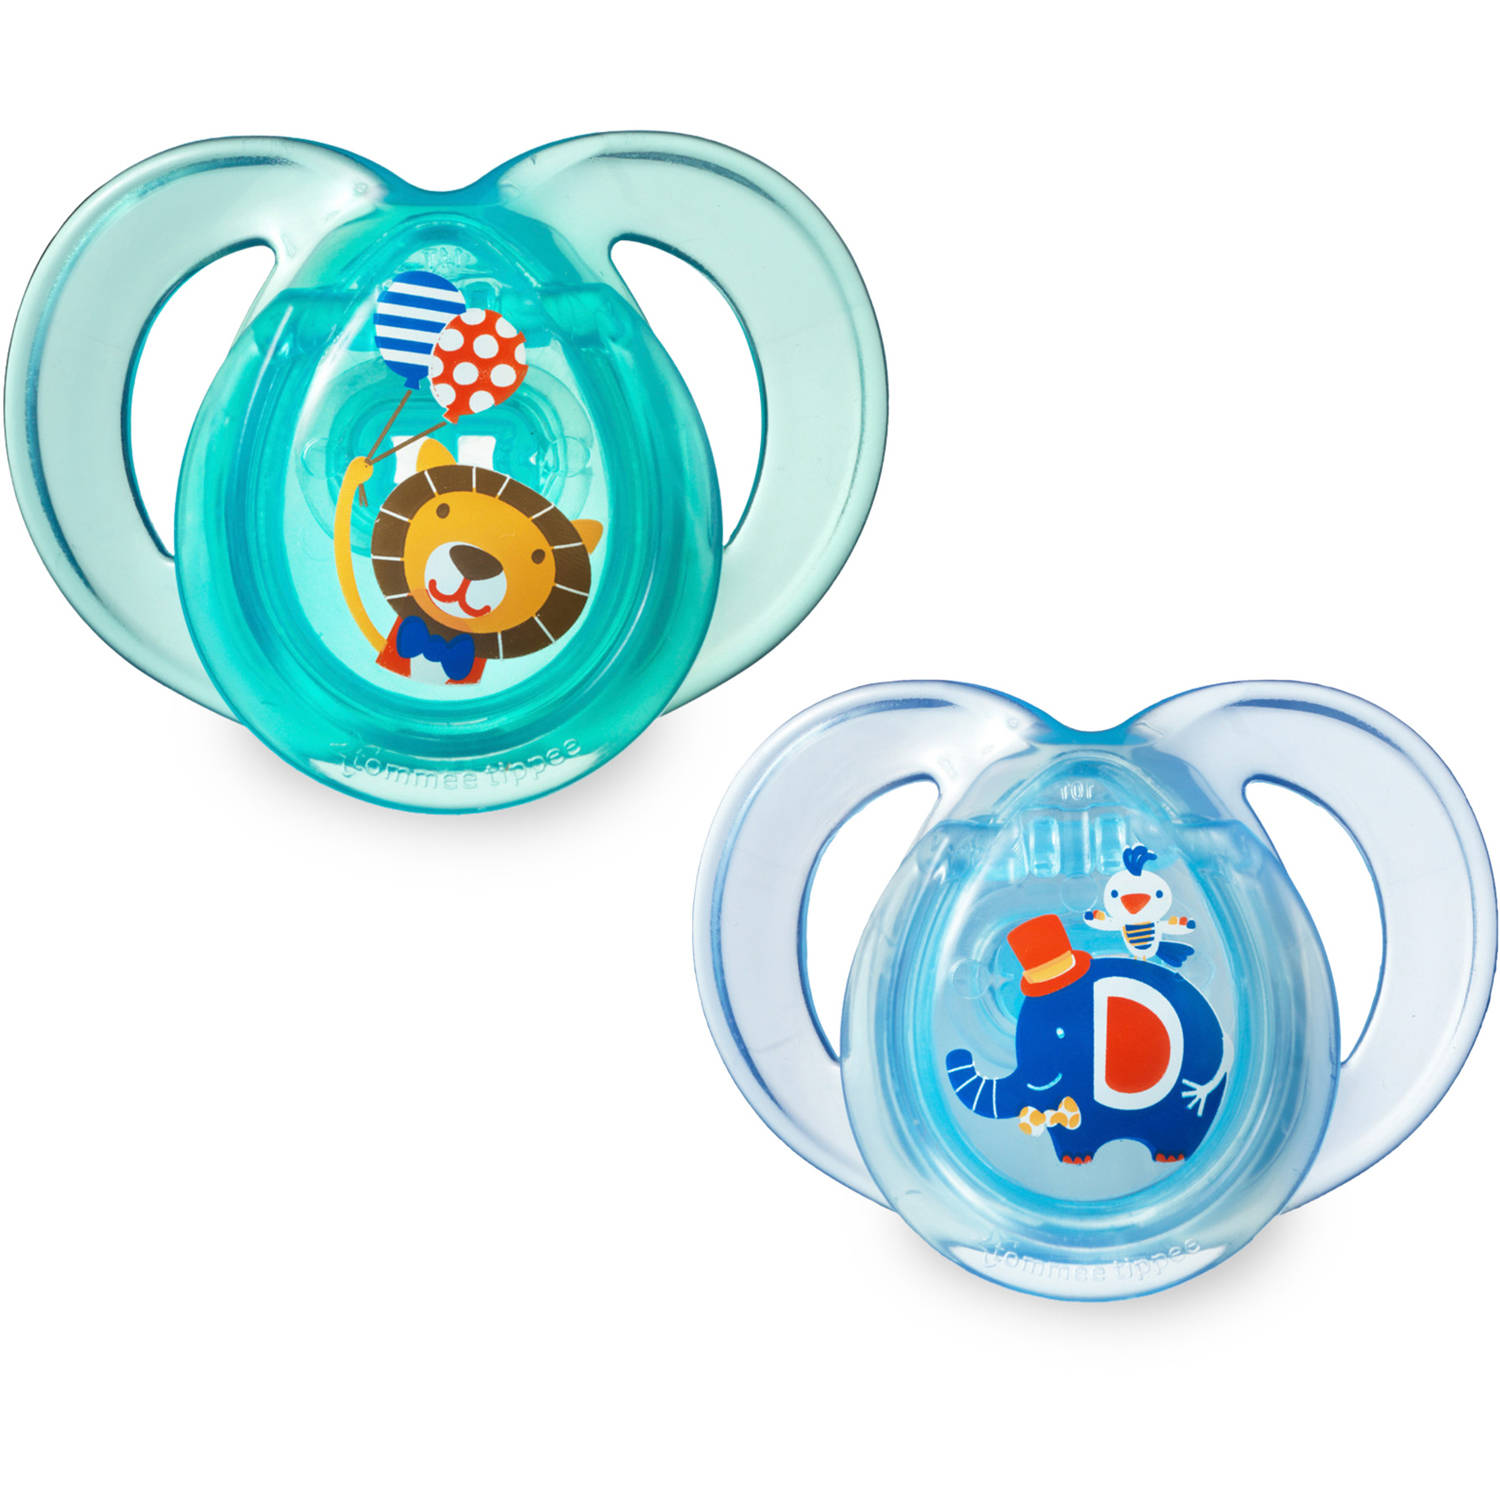 Tommee Tippee Closer to Nature 6-18 Month Everyday Pacifiers, 2pk, Boy